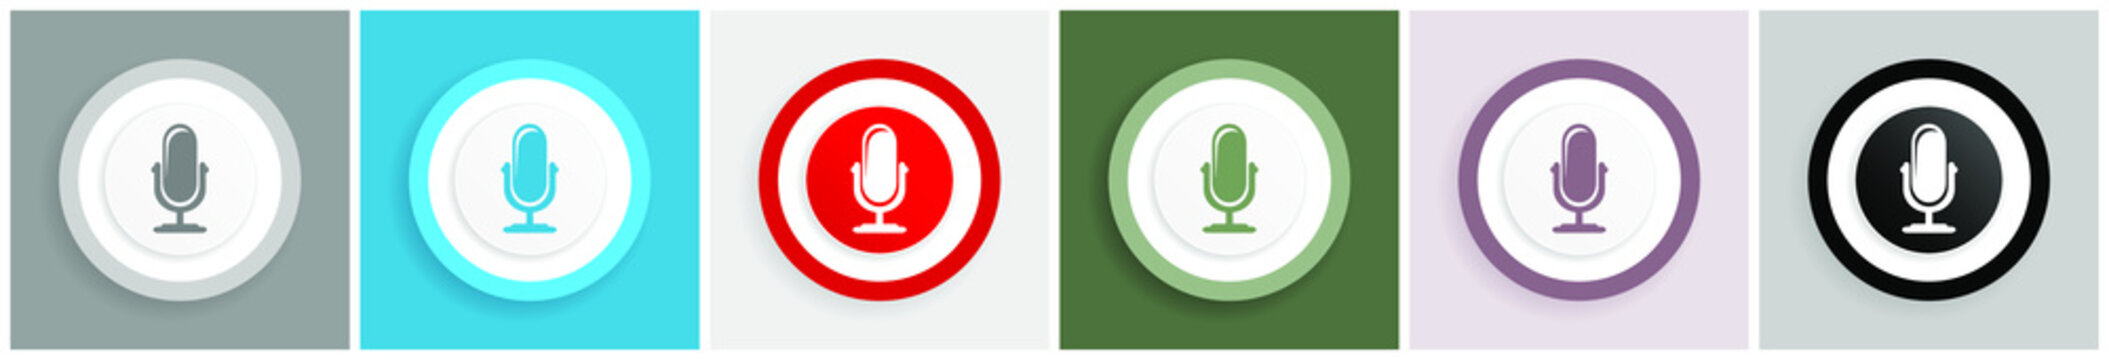 Microphone icon set, colorful flat design vector illustrations in 6 options for web design and mobile applications